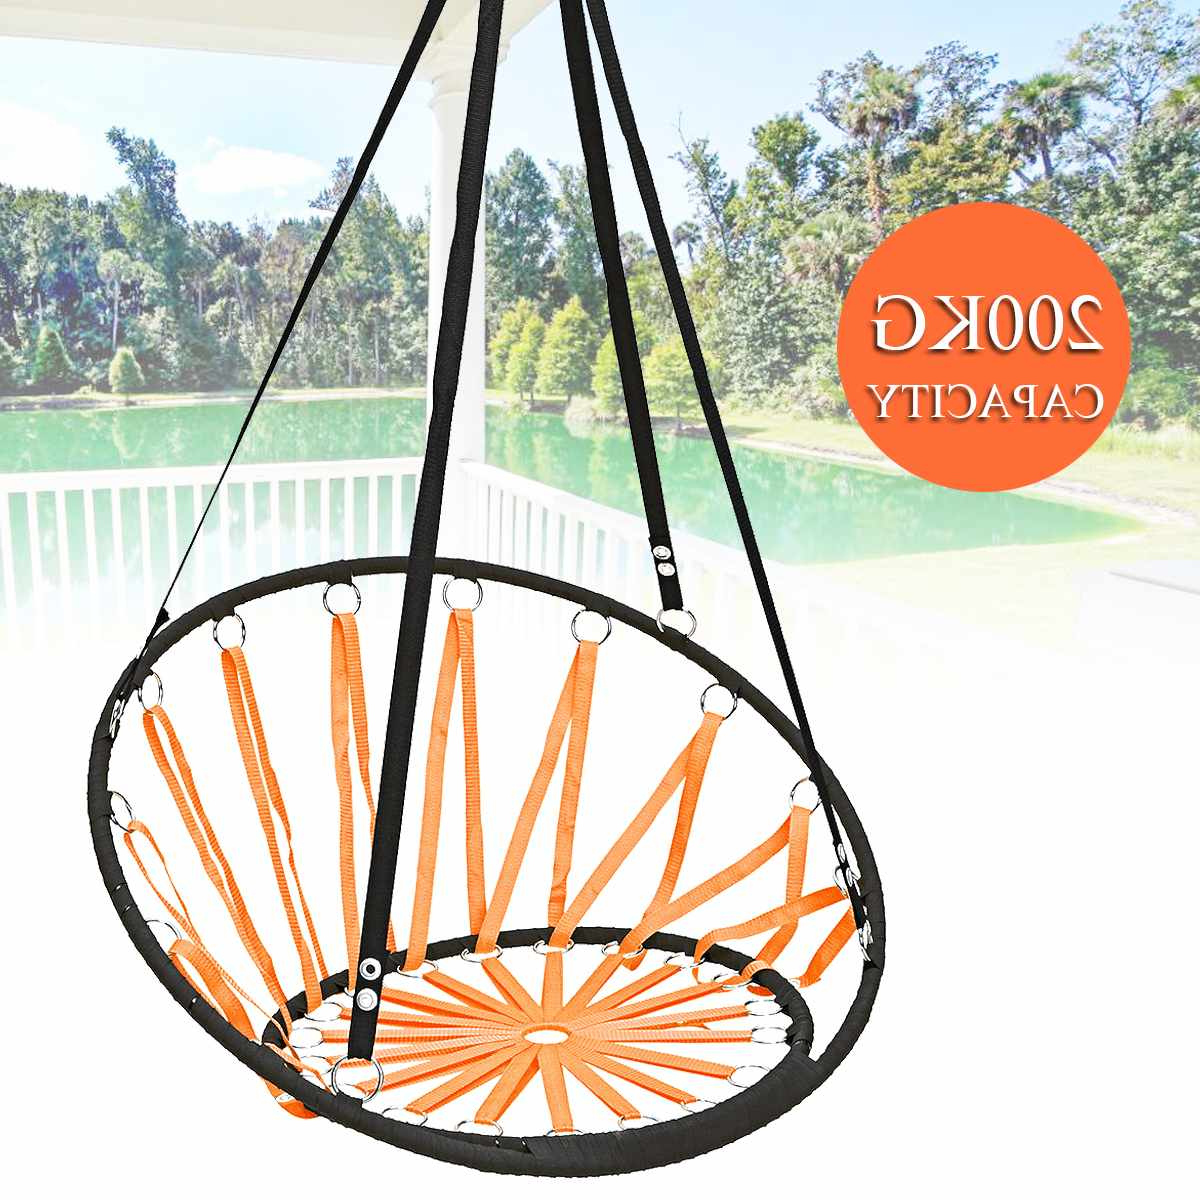 [%us $53.94 52% Off|nordic Outdoor Indoor Cotton Rope Hammock Chair Swinging Hanging Chair Garden Air Porch Swing Chair Dormitory Camping Seat In Regarding Recent Patio Glider Hammock Porch Swings|patio Glider Hammock Porch Swings In Recent Us $53.94 52% Off|nordic Outdoor Indoor Cotton Rope Hammock Chair Swinging Hanging Chair Garden Air Porch Swing Chair Dormitory Camping Seat In|most Up To Date Patio Glider Hammock Porch Swings Throughout Us $53.94 52% Off|nordic Outdoor Indoor Cotton Rope Hammock Chair Swinging Hanging Chair Garden Air Porch Swing Chair Dormitory Camping Seat In|latest Us $ (View 17 of 25)